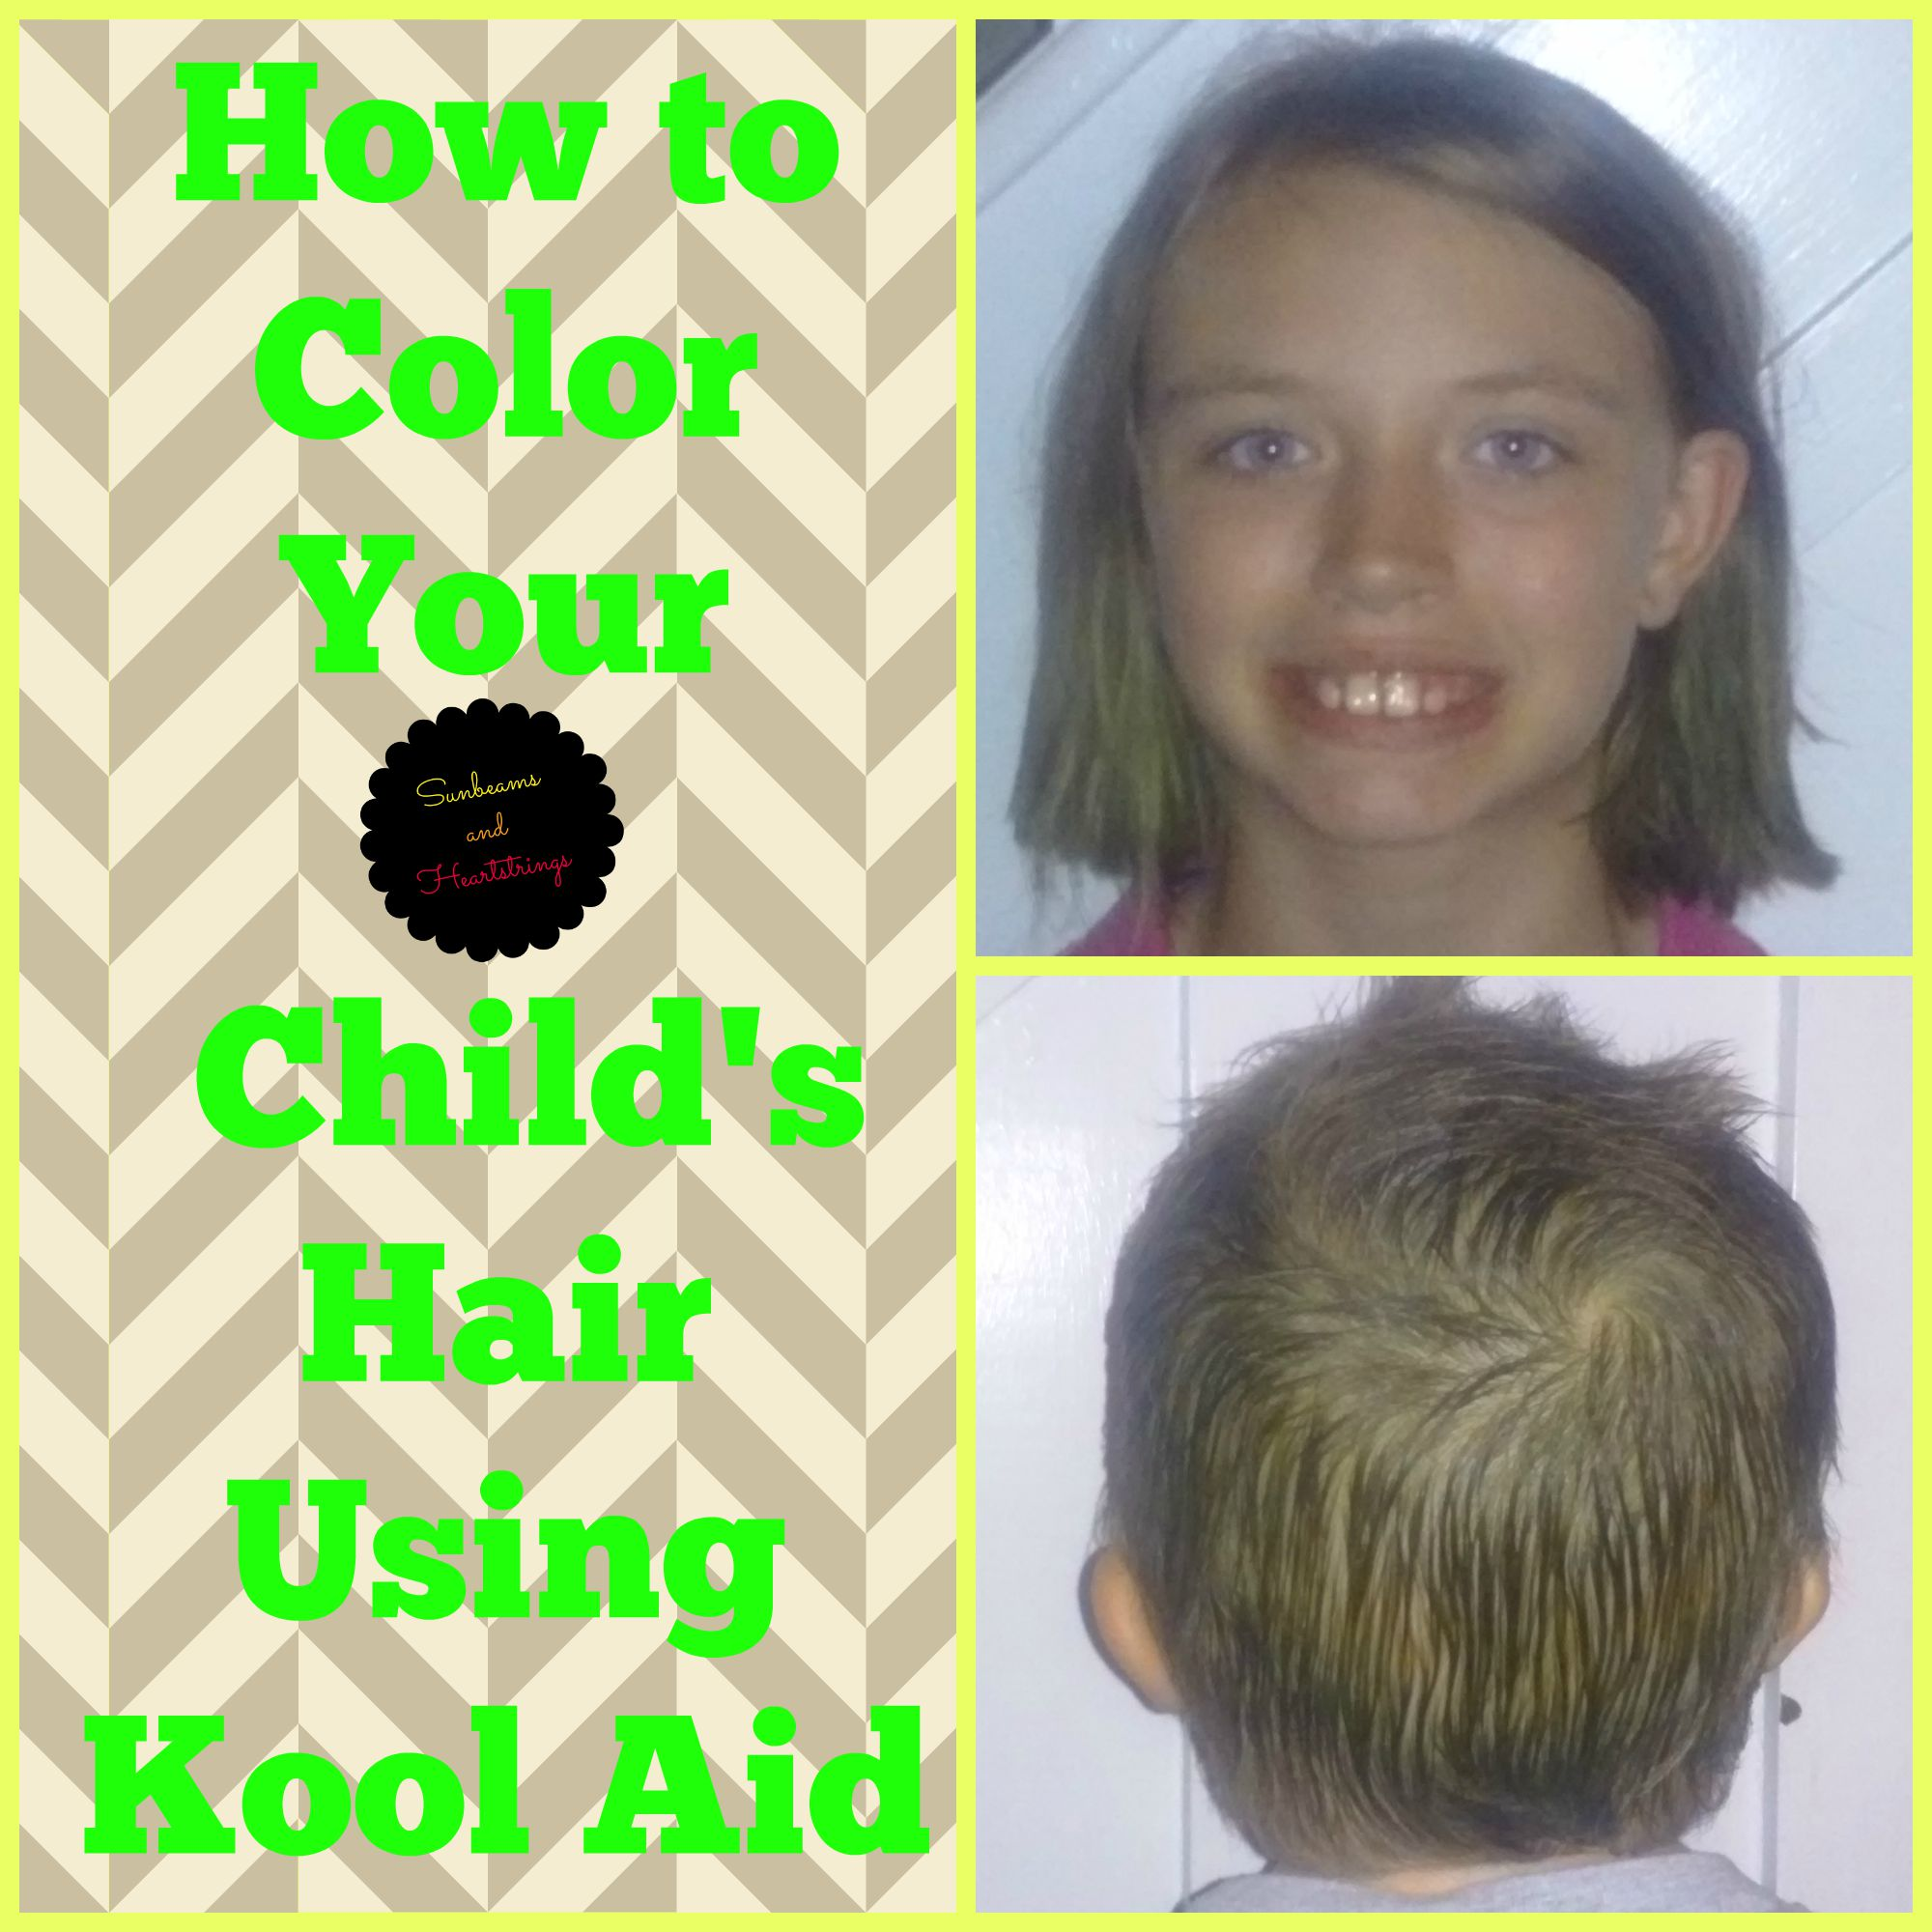 How To Color Your Childs Hair Using Kool Aid Sunbeams And